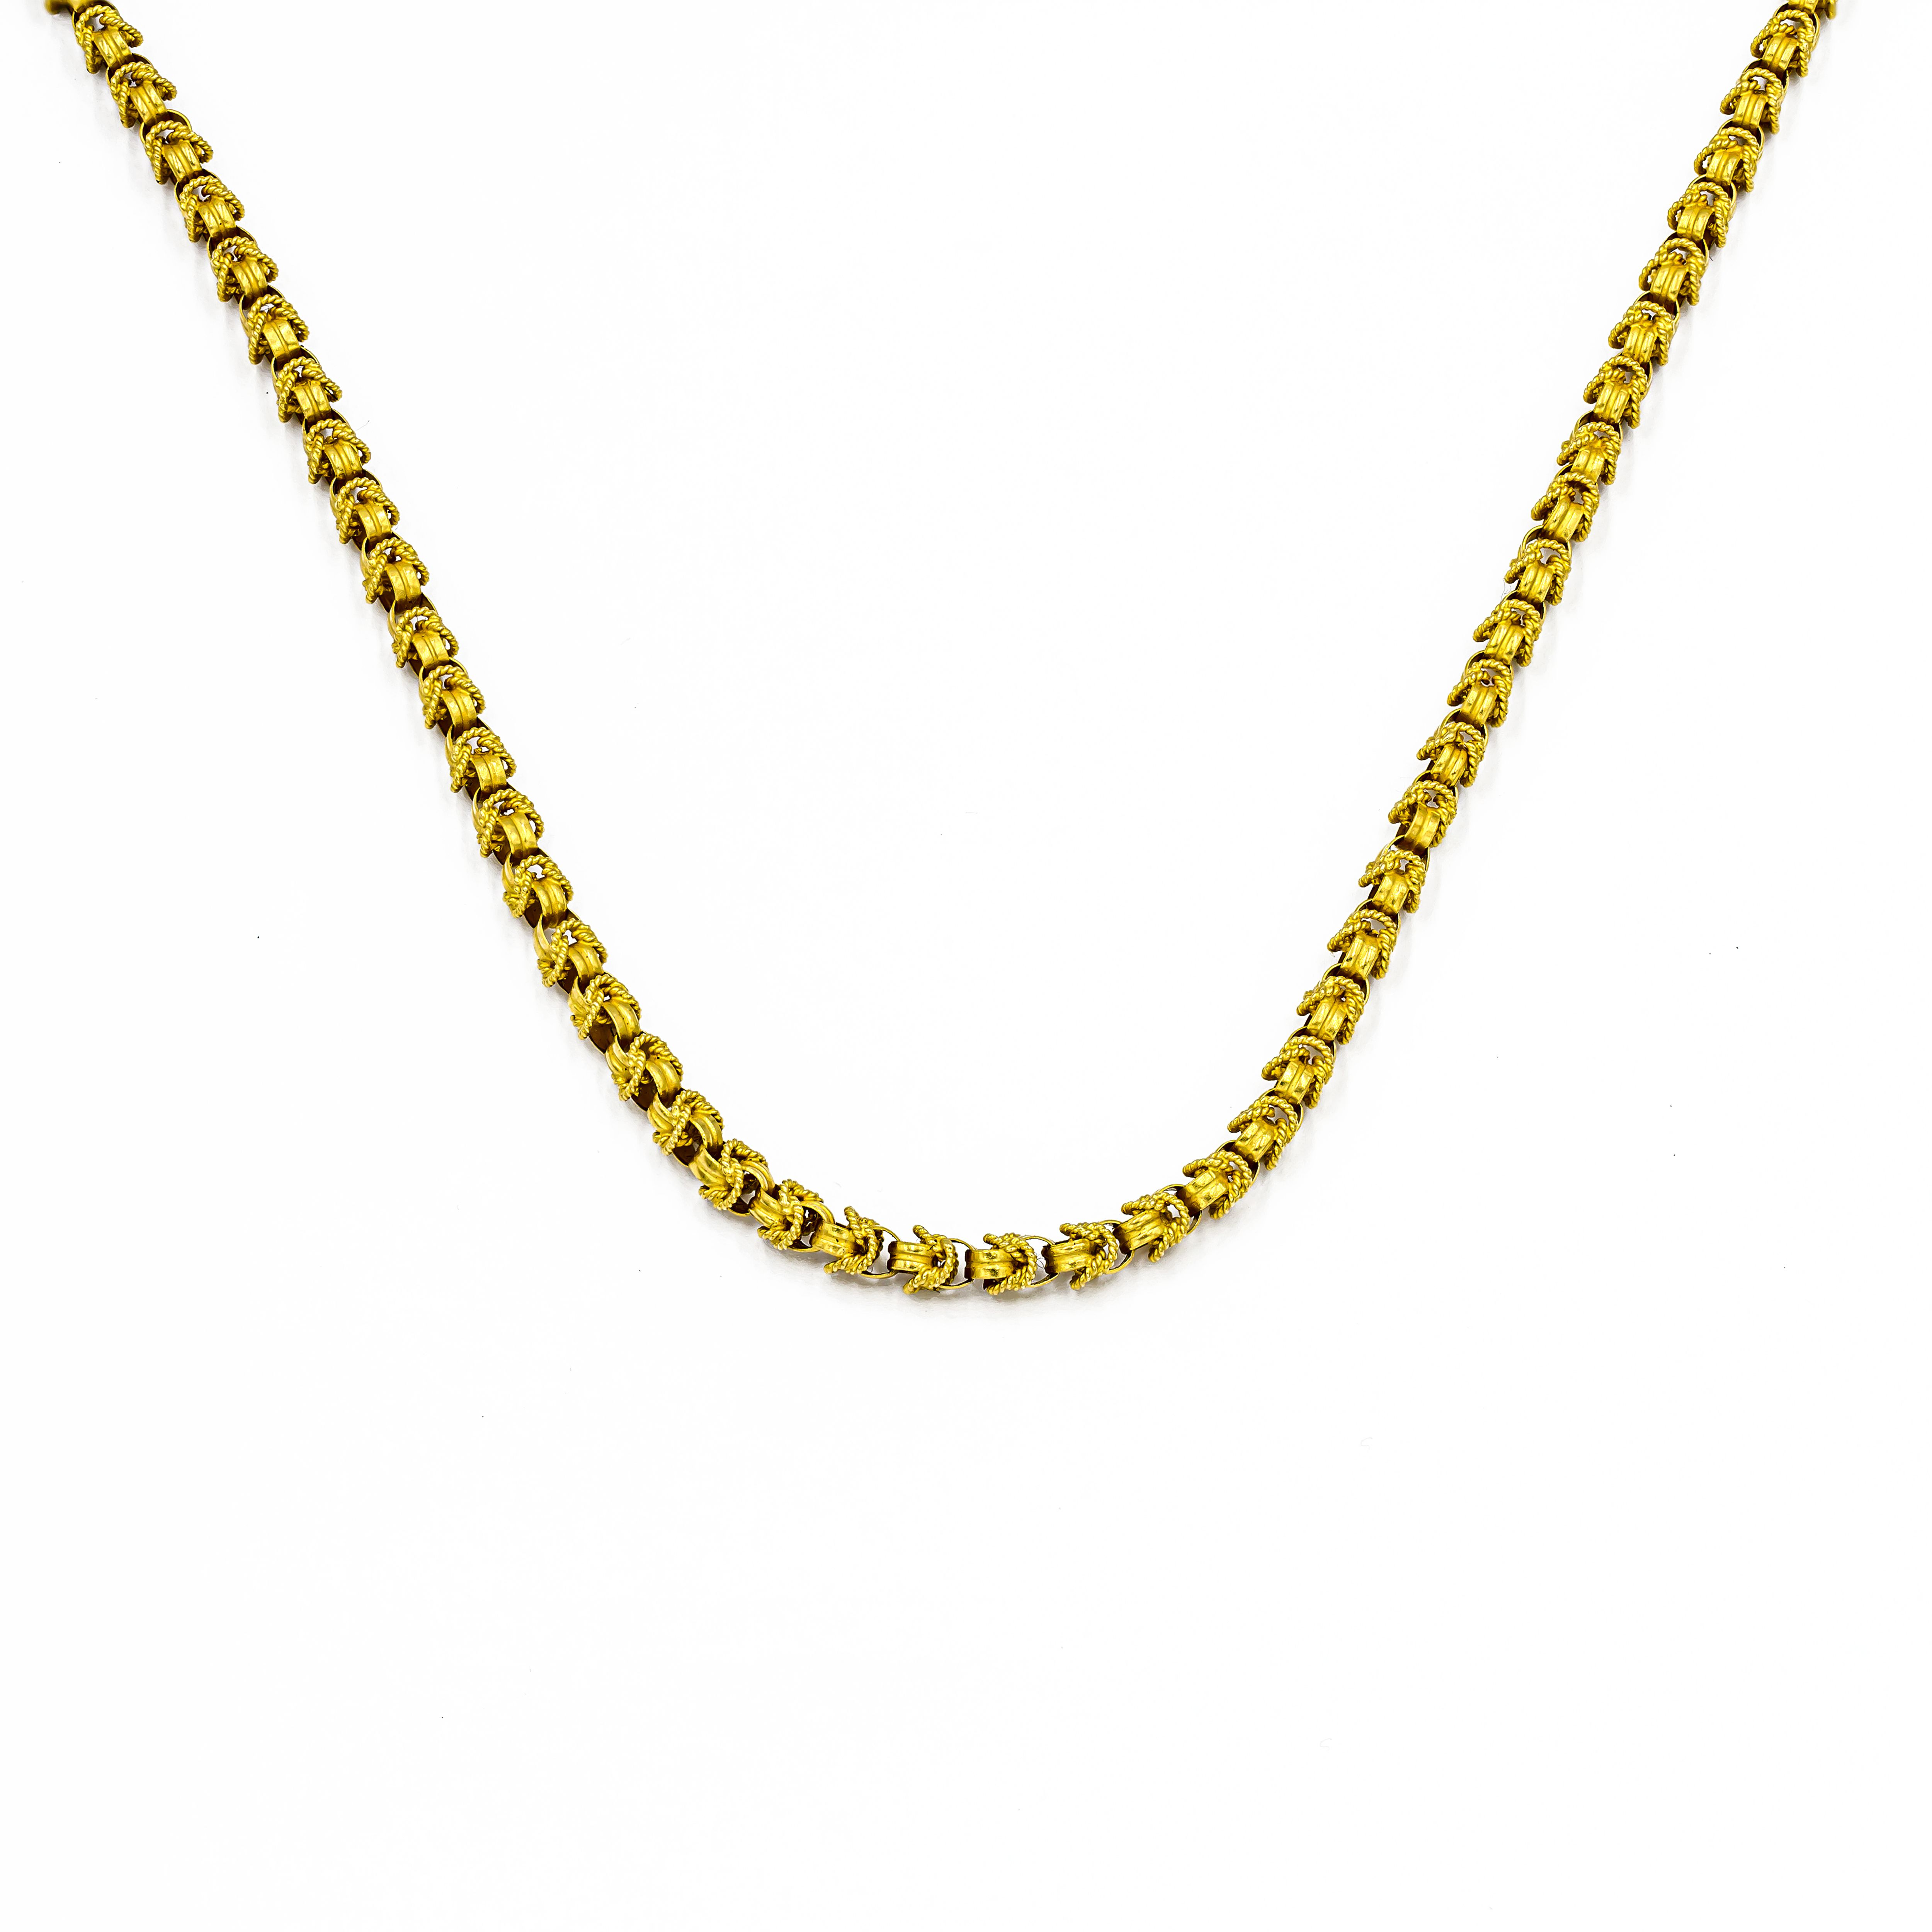 Pre-owned 18ct Yellow Gold Chain